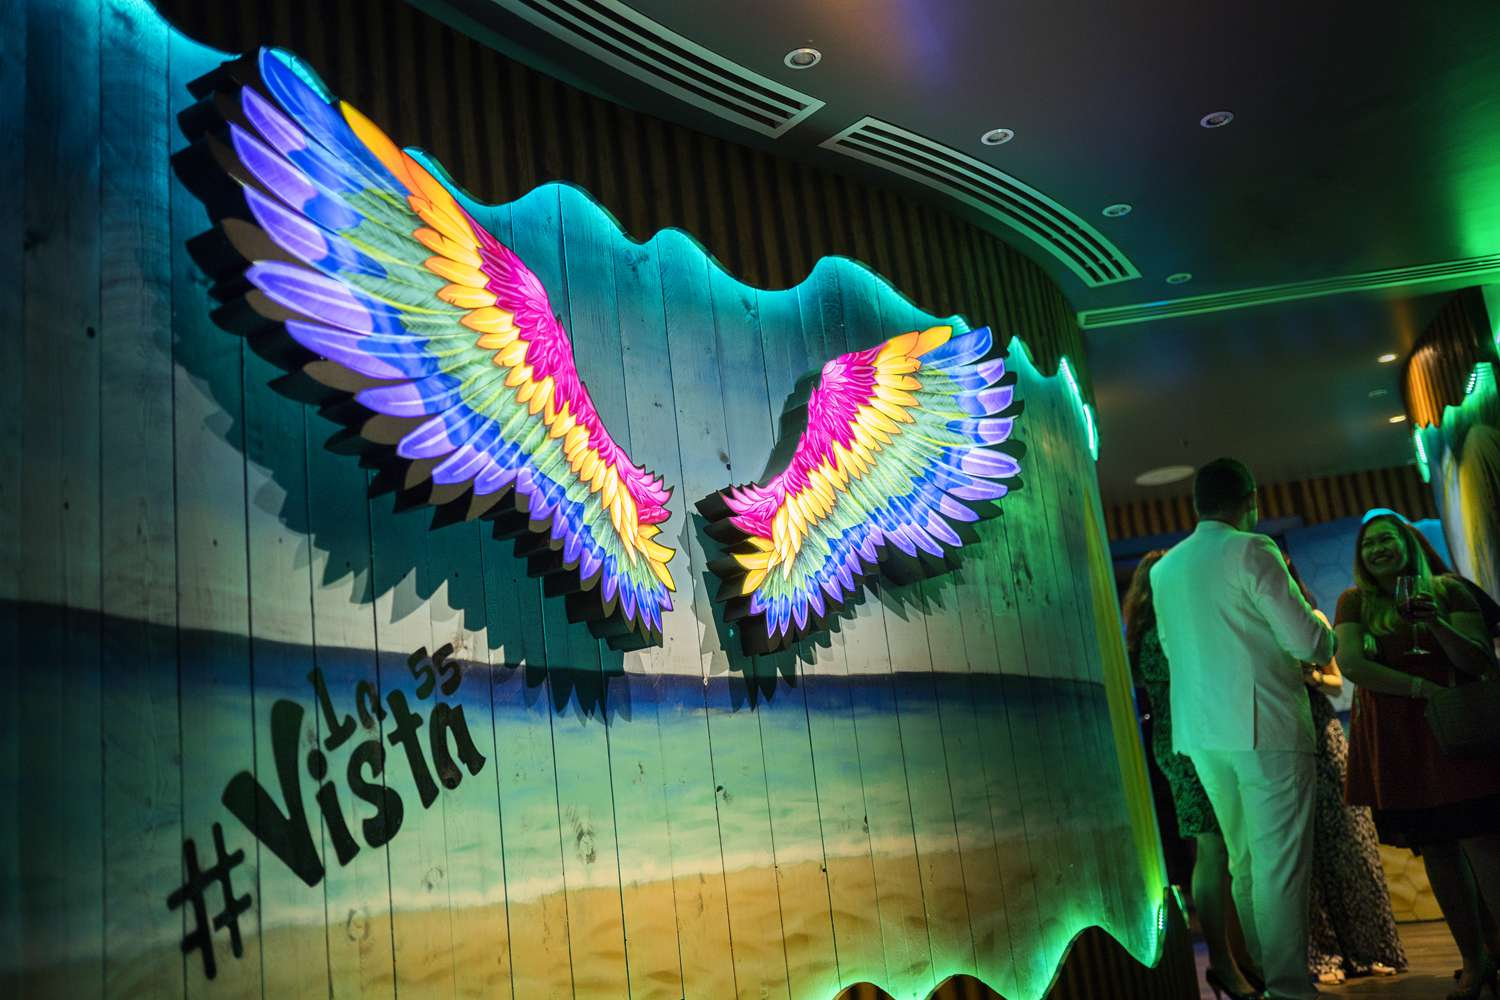 Colorful, illumbinated wings on a wooden wall painted like the beach.